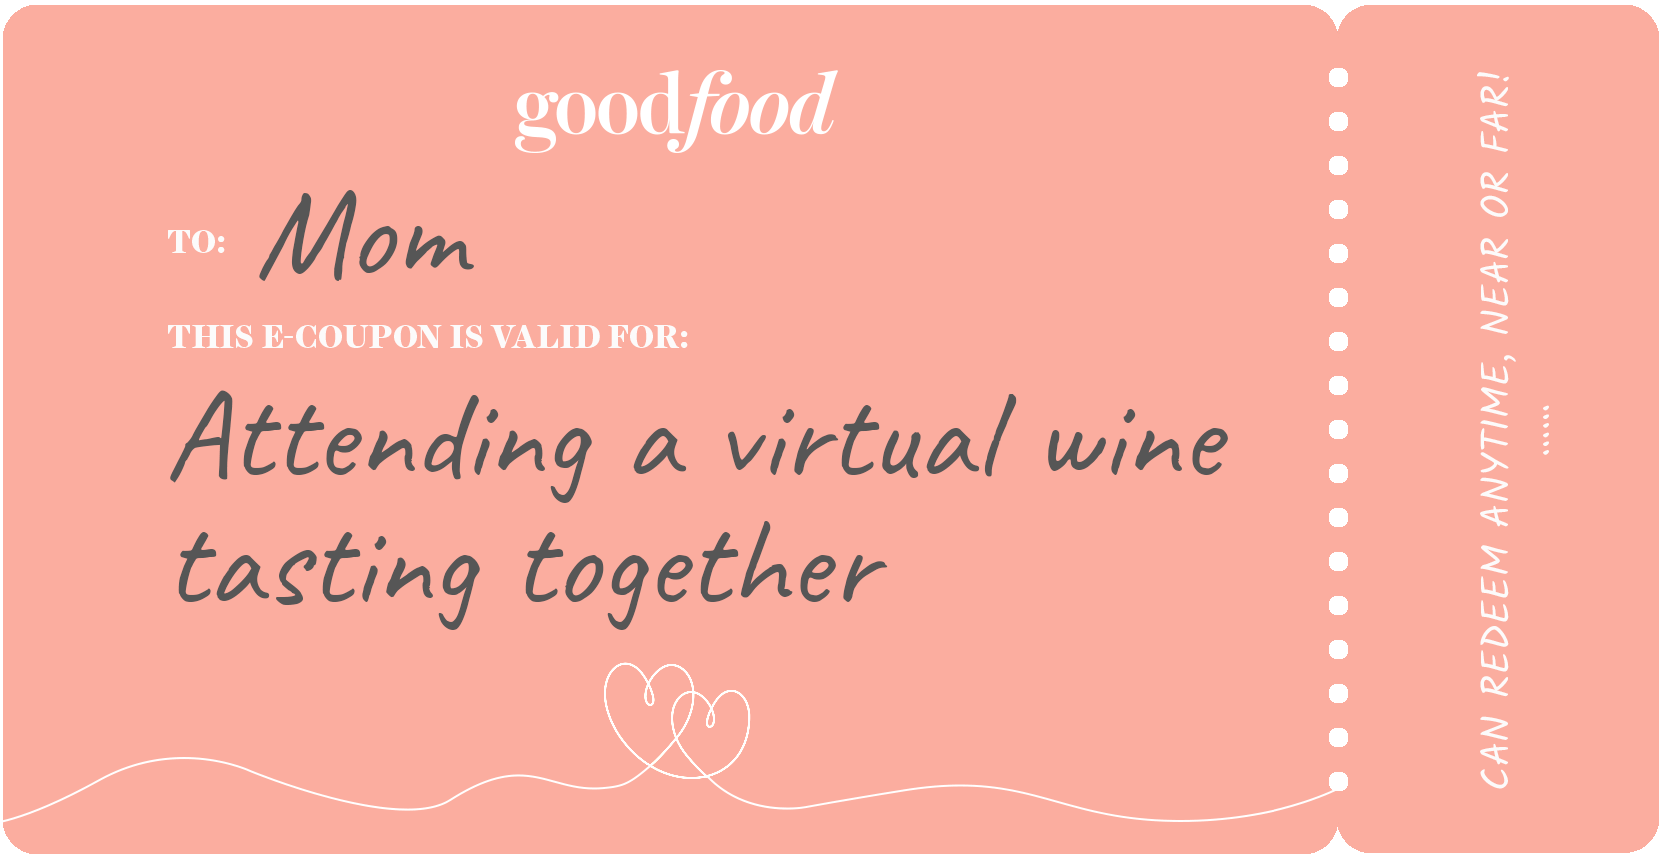 Coupon example, virtual wine tasting